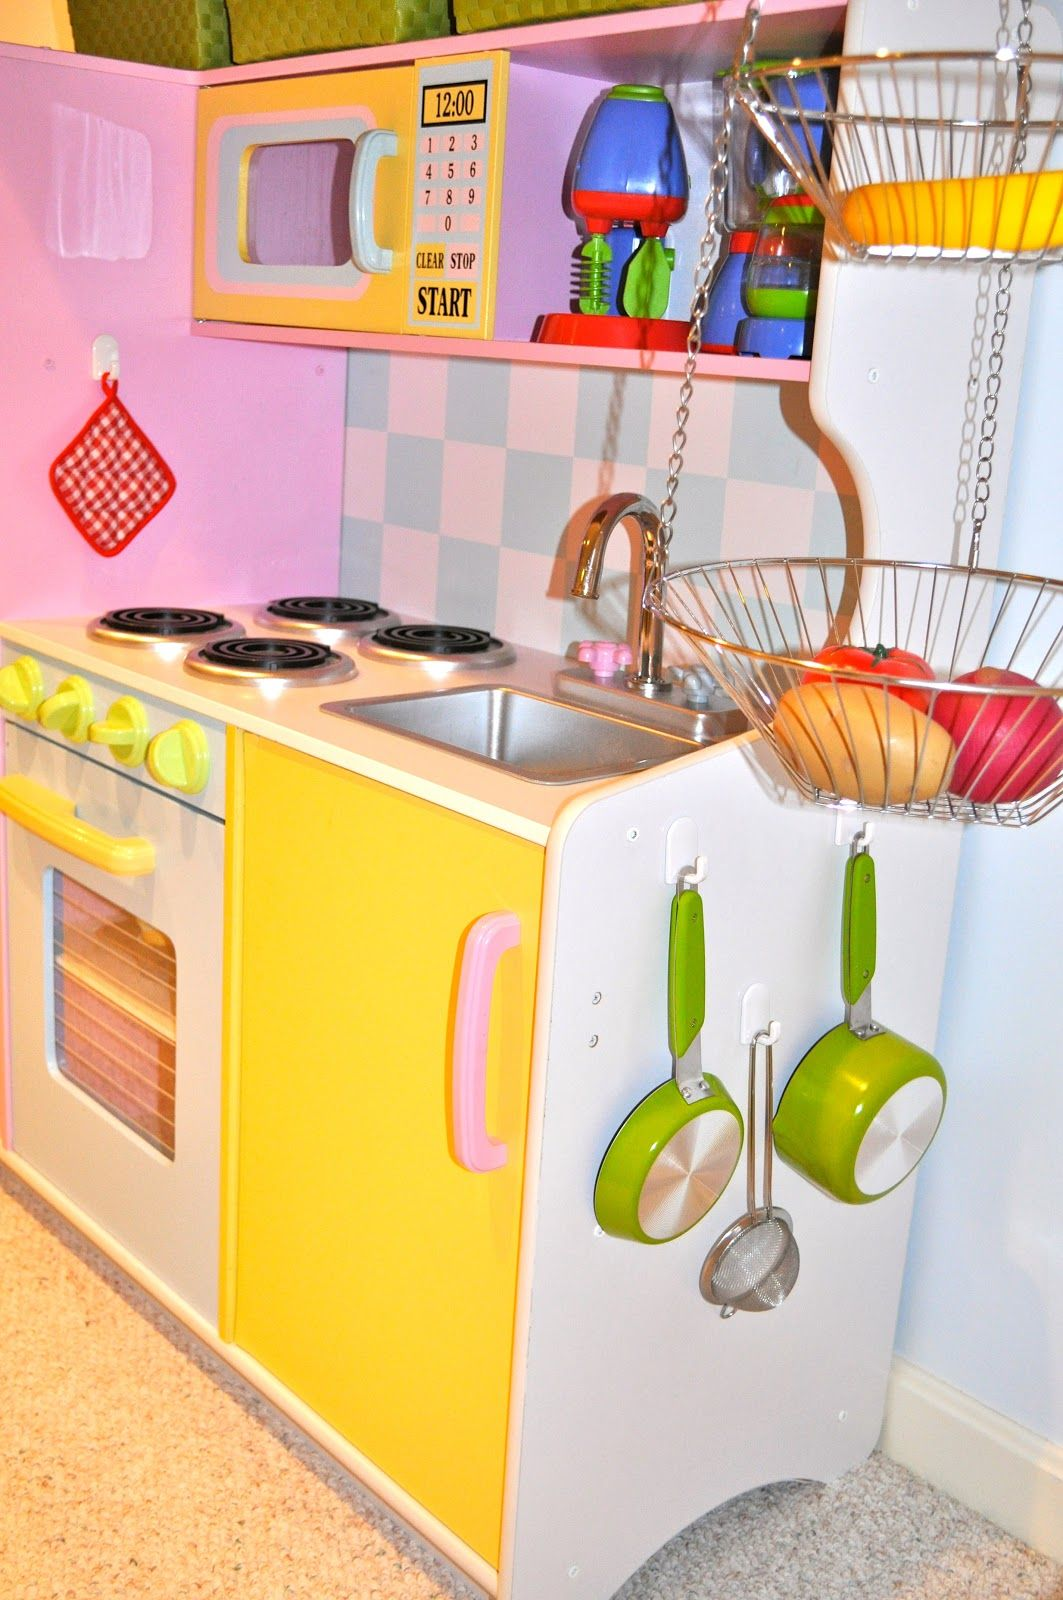 For storing play food new house ideas pinterest play for Playroom kitchen ideas